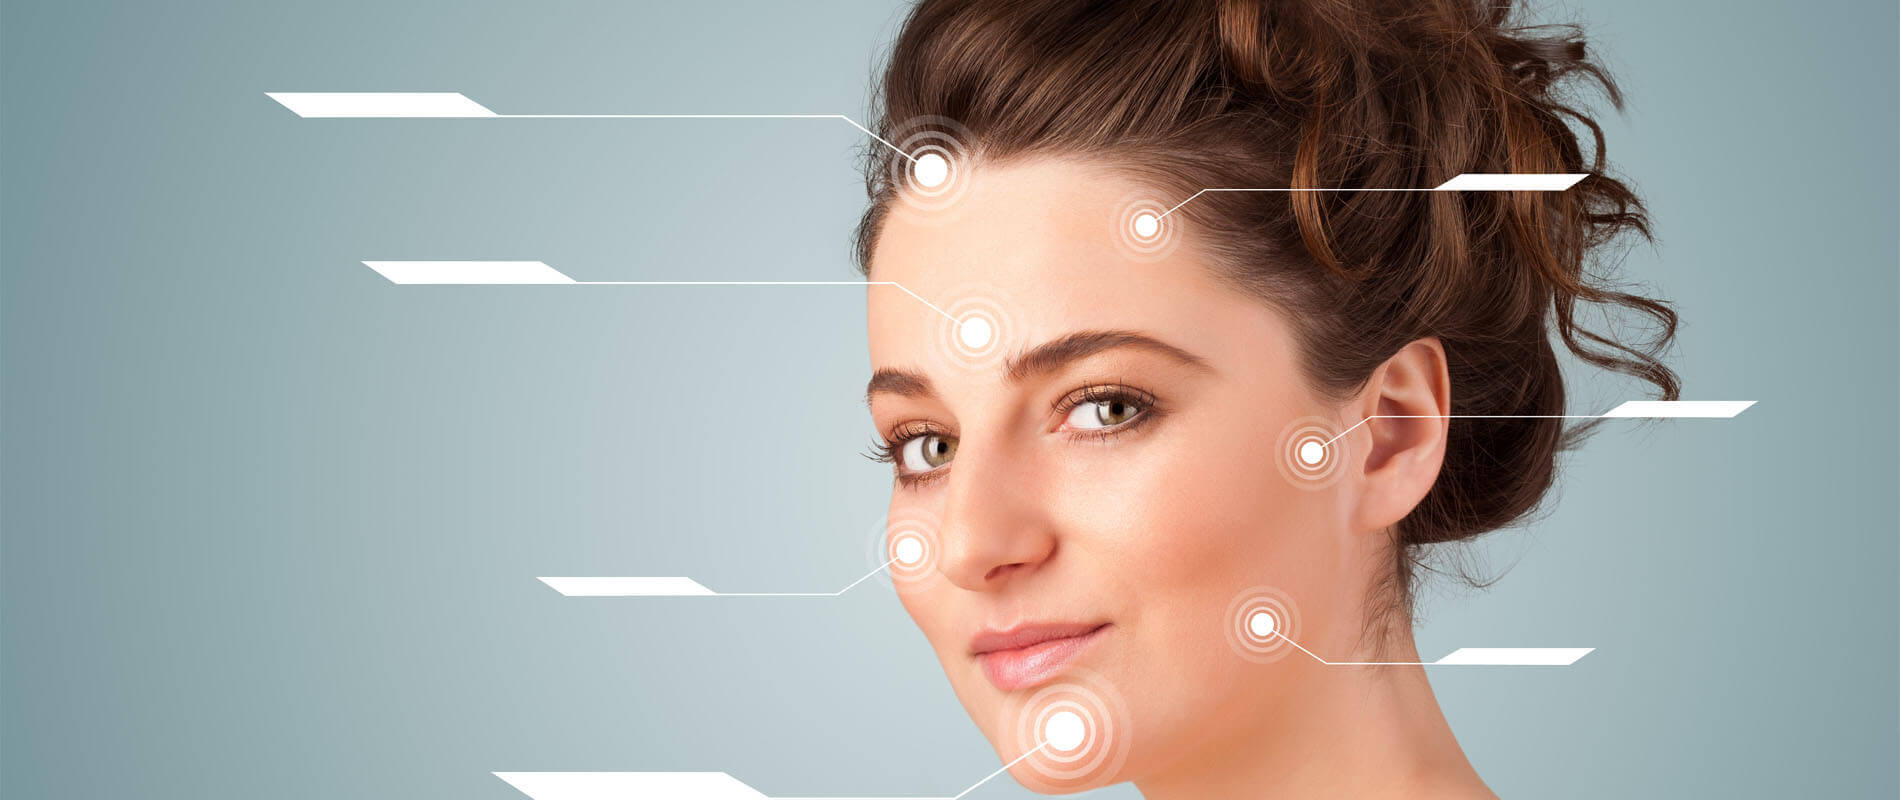 Rhinoplasty clinic in hyderabad